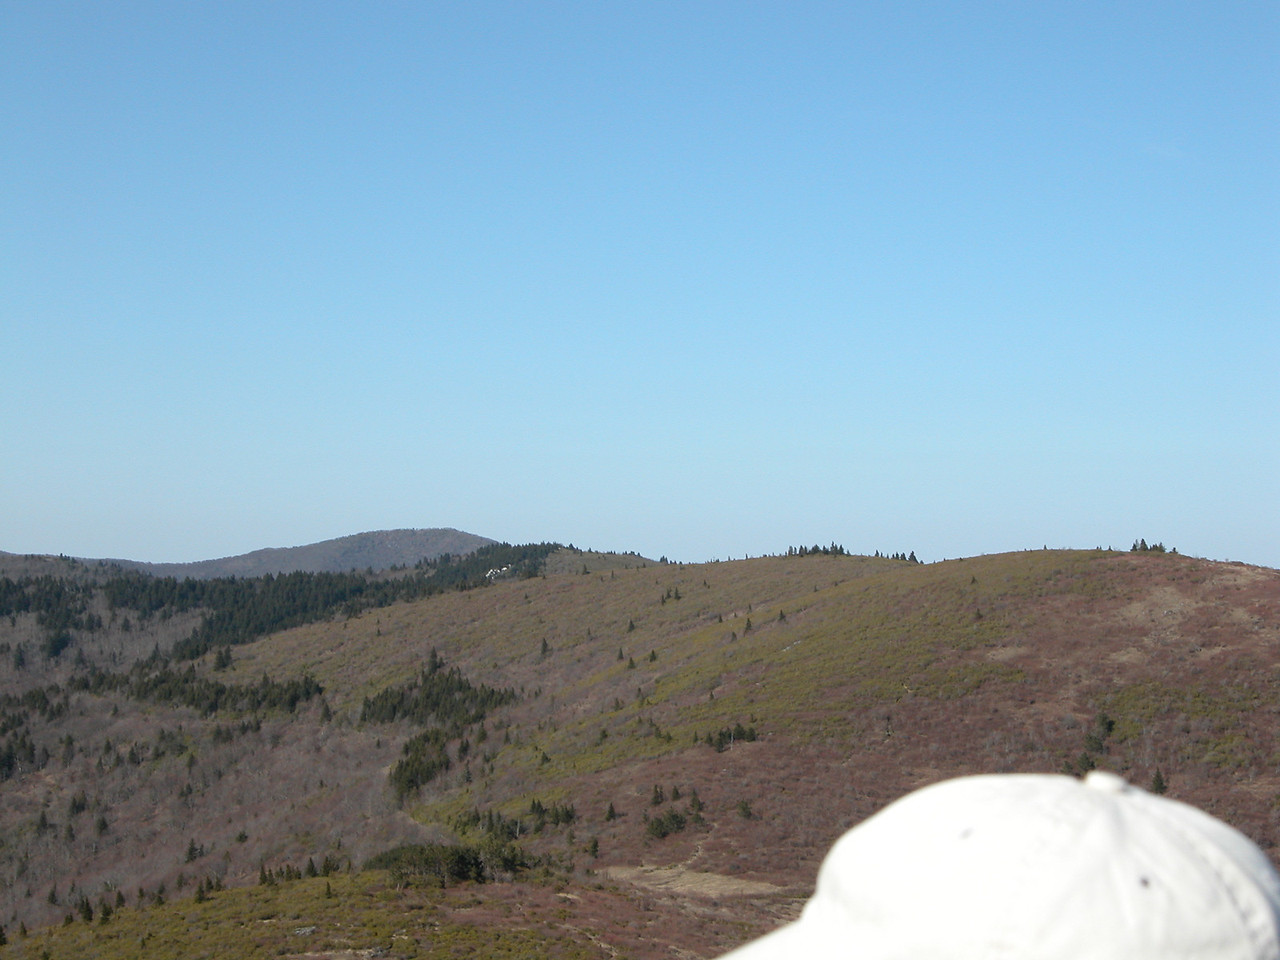 another part of failed attempt at producing a pano from the summit of Tennent<br /> <br /> Ivestor Gap is the sandy area to the left of John's cap, Grassy Cove Top is above it. Shining Rock and Cold Mtn. in the background